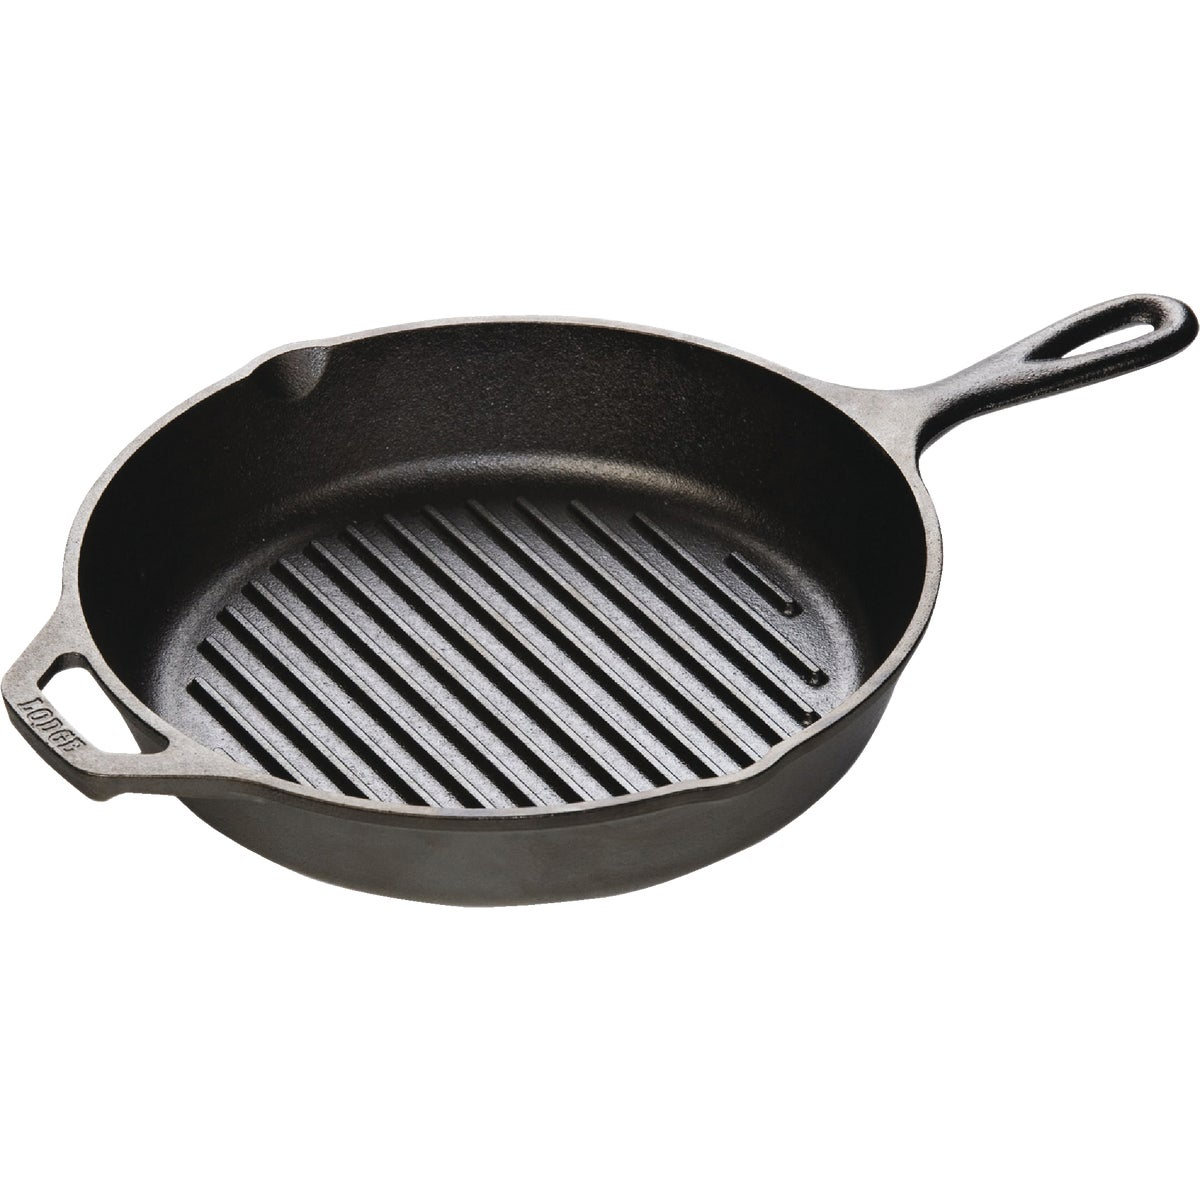 "10-1/4""CST-IRN GRILL PAN - L8GP3 by Lodge Mfg Co"